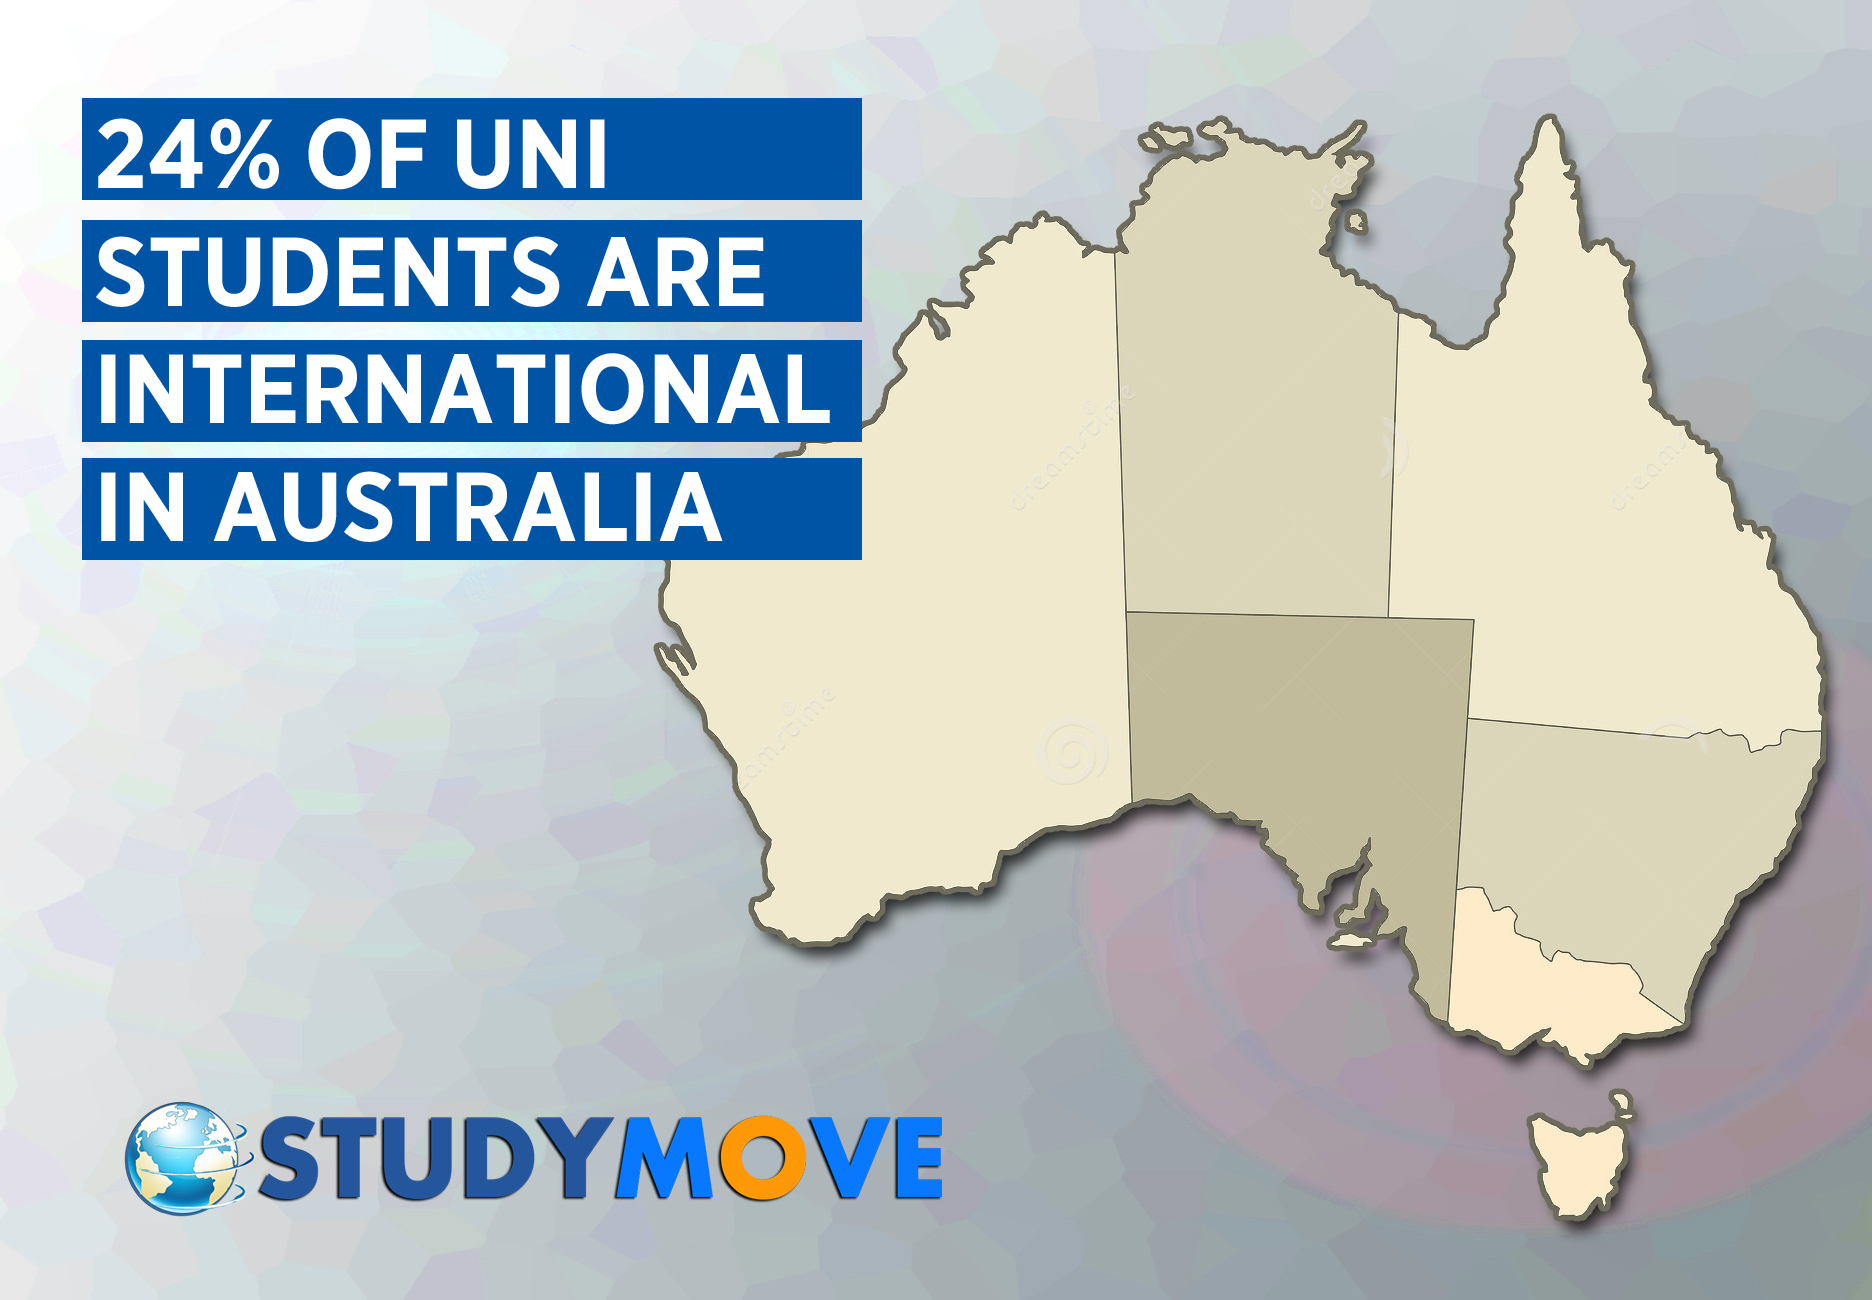 Percentage of International Students in Australia